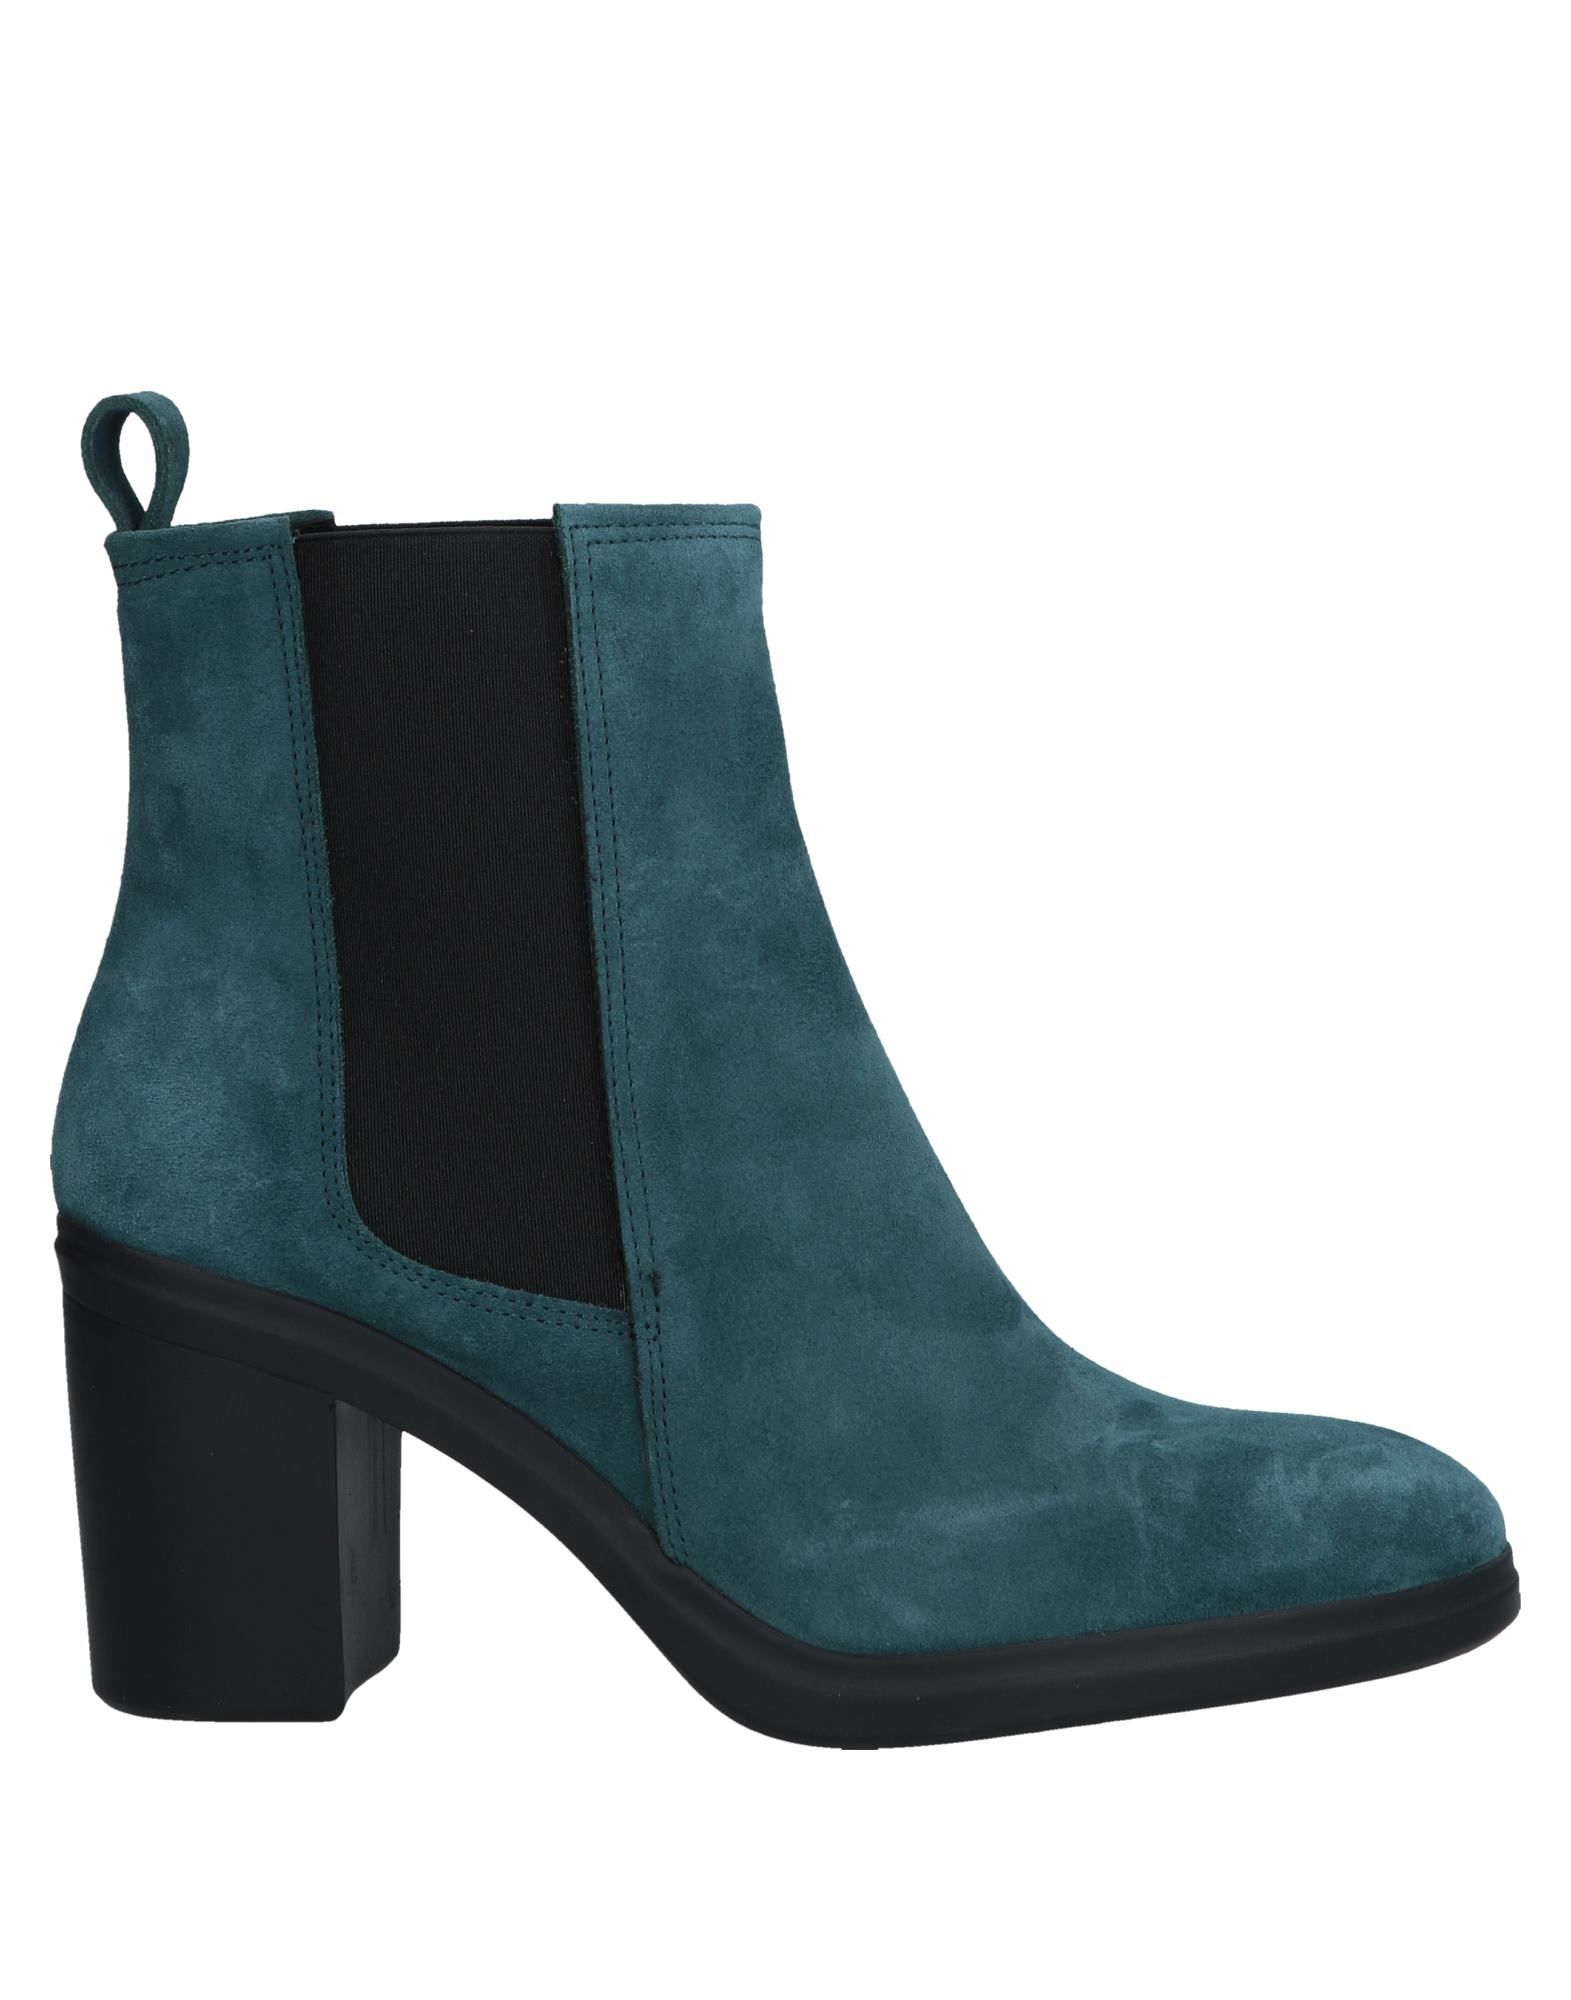 Pons Quintana Ankle Boot - Boots Women Pons Quintana Ankle Boots - online on  United Kingdom - 11555920UO 57c7f3